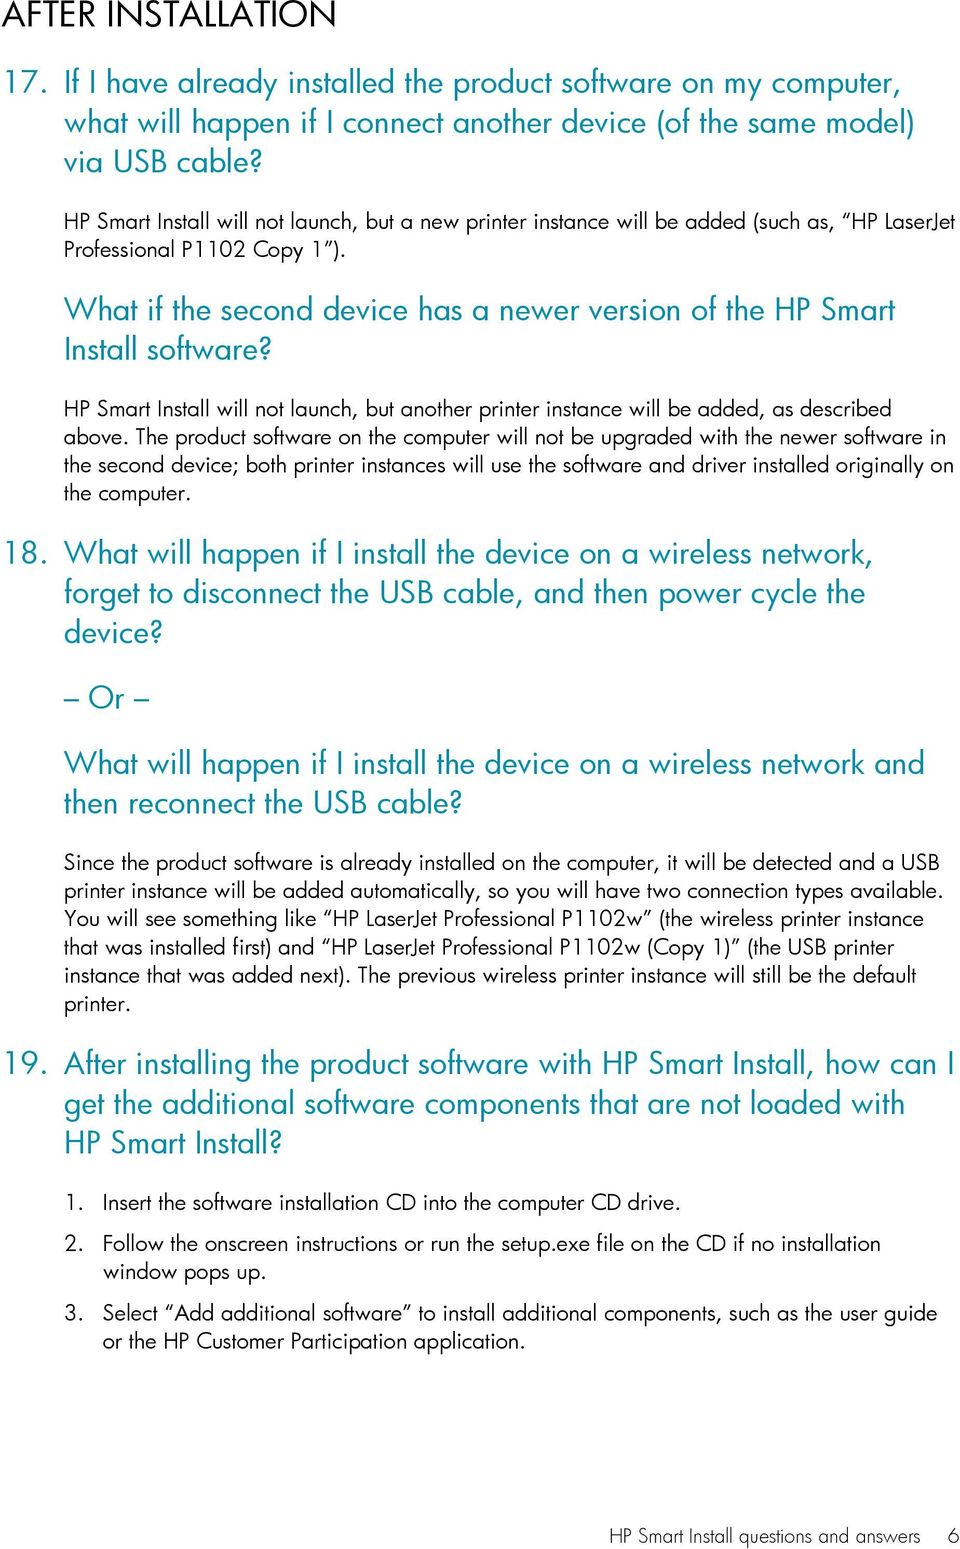 What if the second device has a newer version of the HP Smart Install software? HP Smart Install will not launch, but another printer instance will be added, as described above.